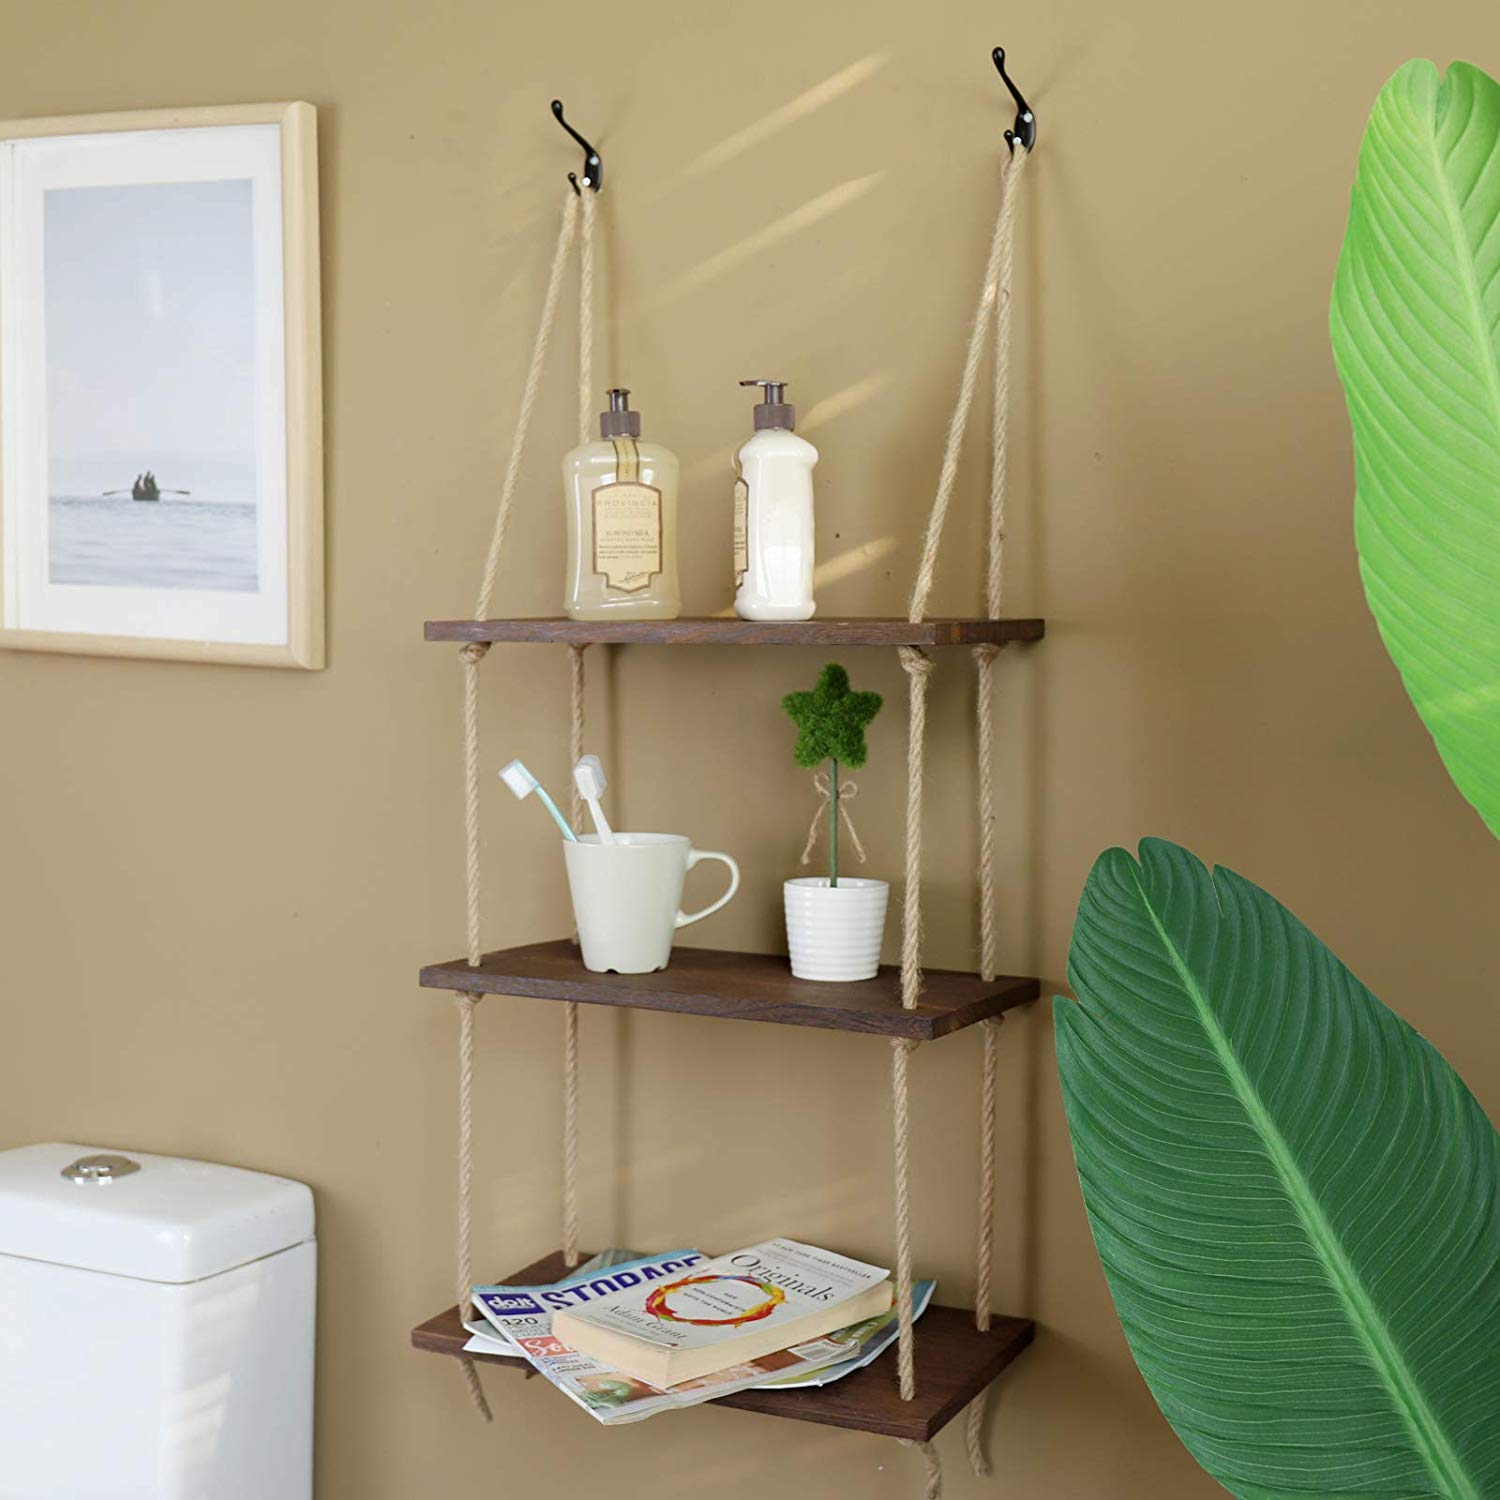 3 Tier Jute Rope Hanging Shelves